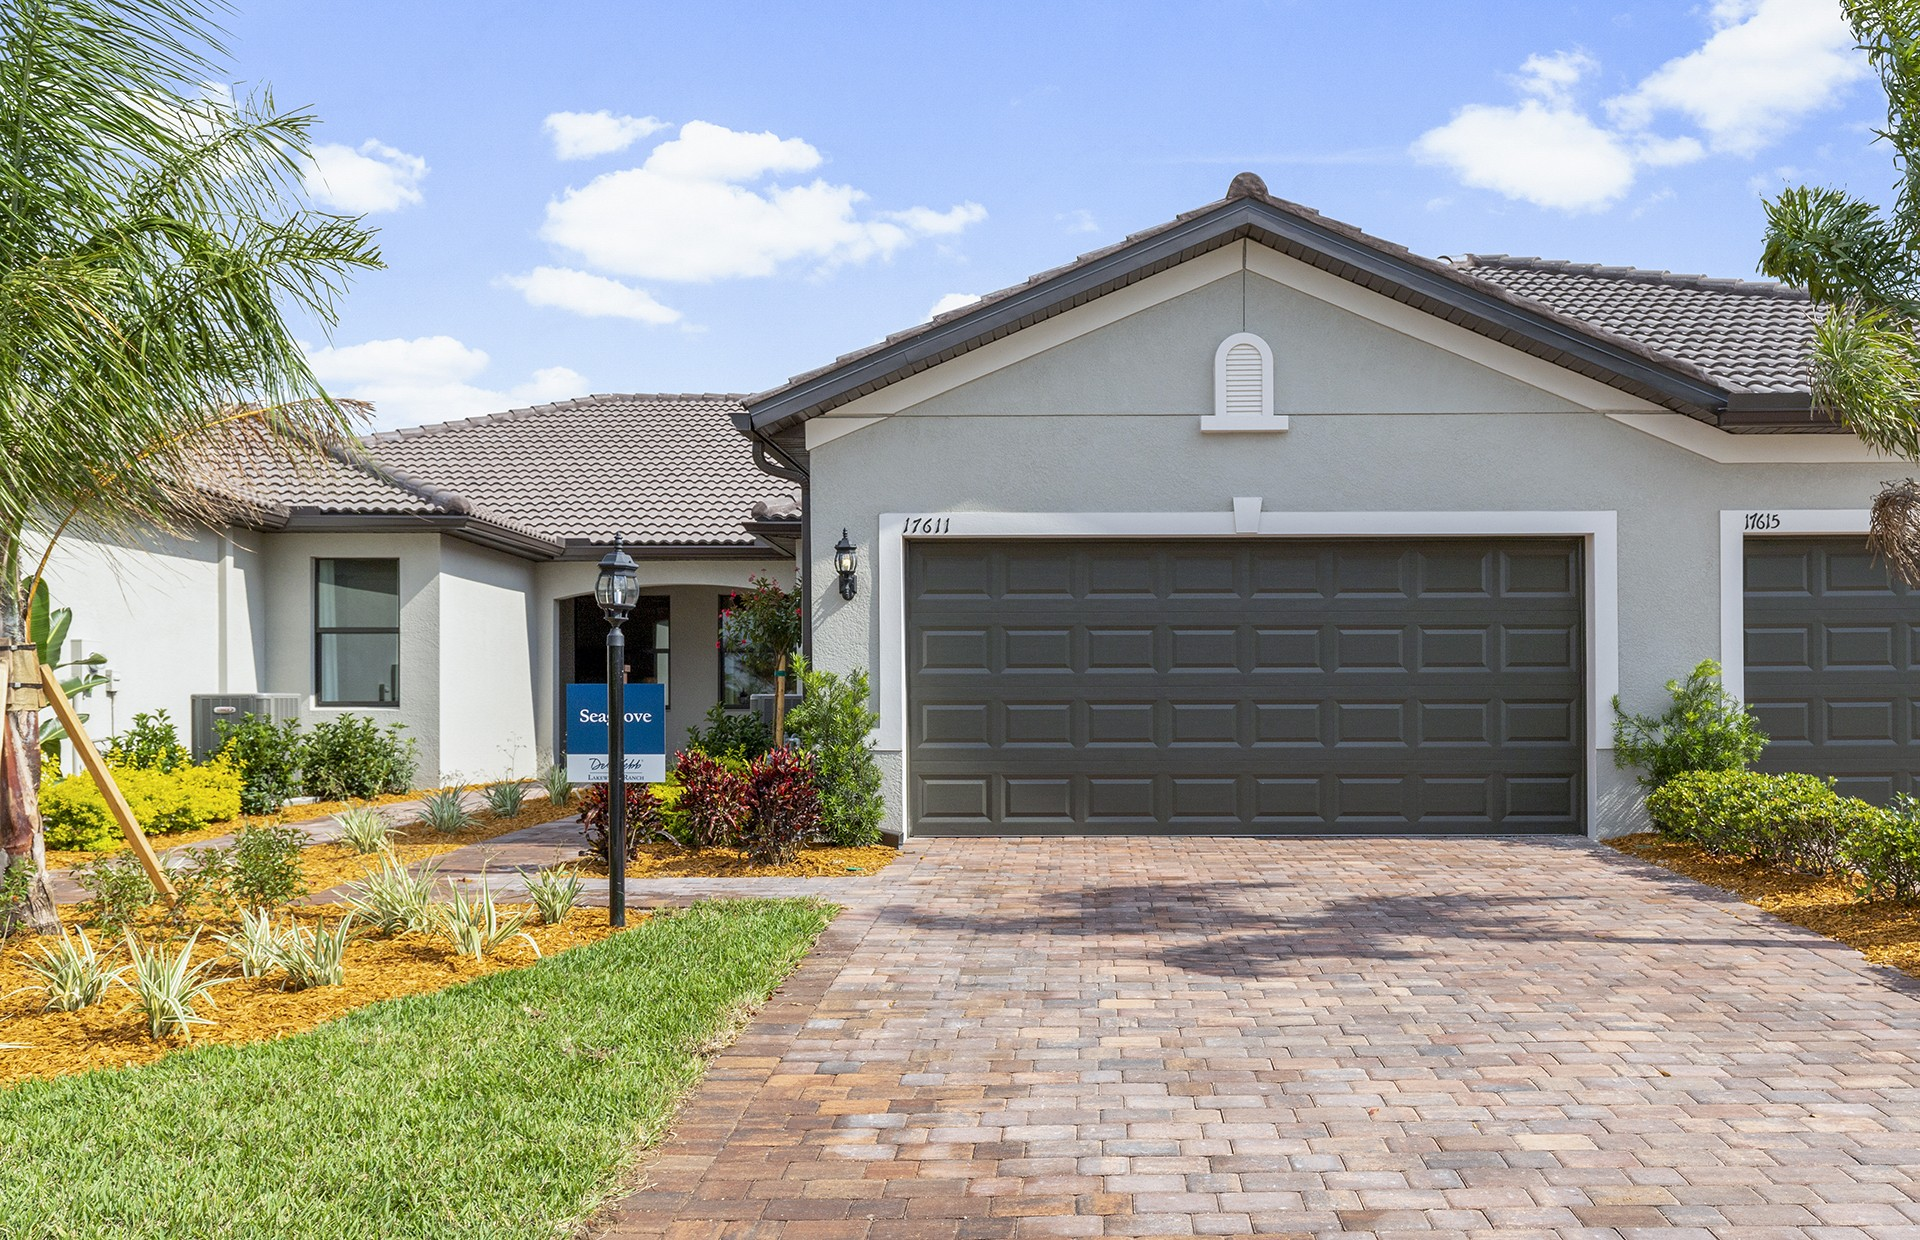 SWFL-DW-DWL-Seagrove-Front-Ext_web.jpg